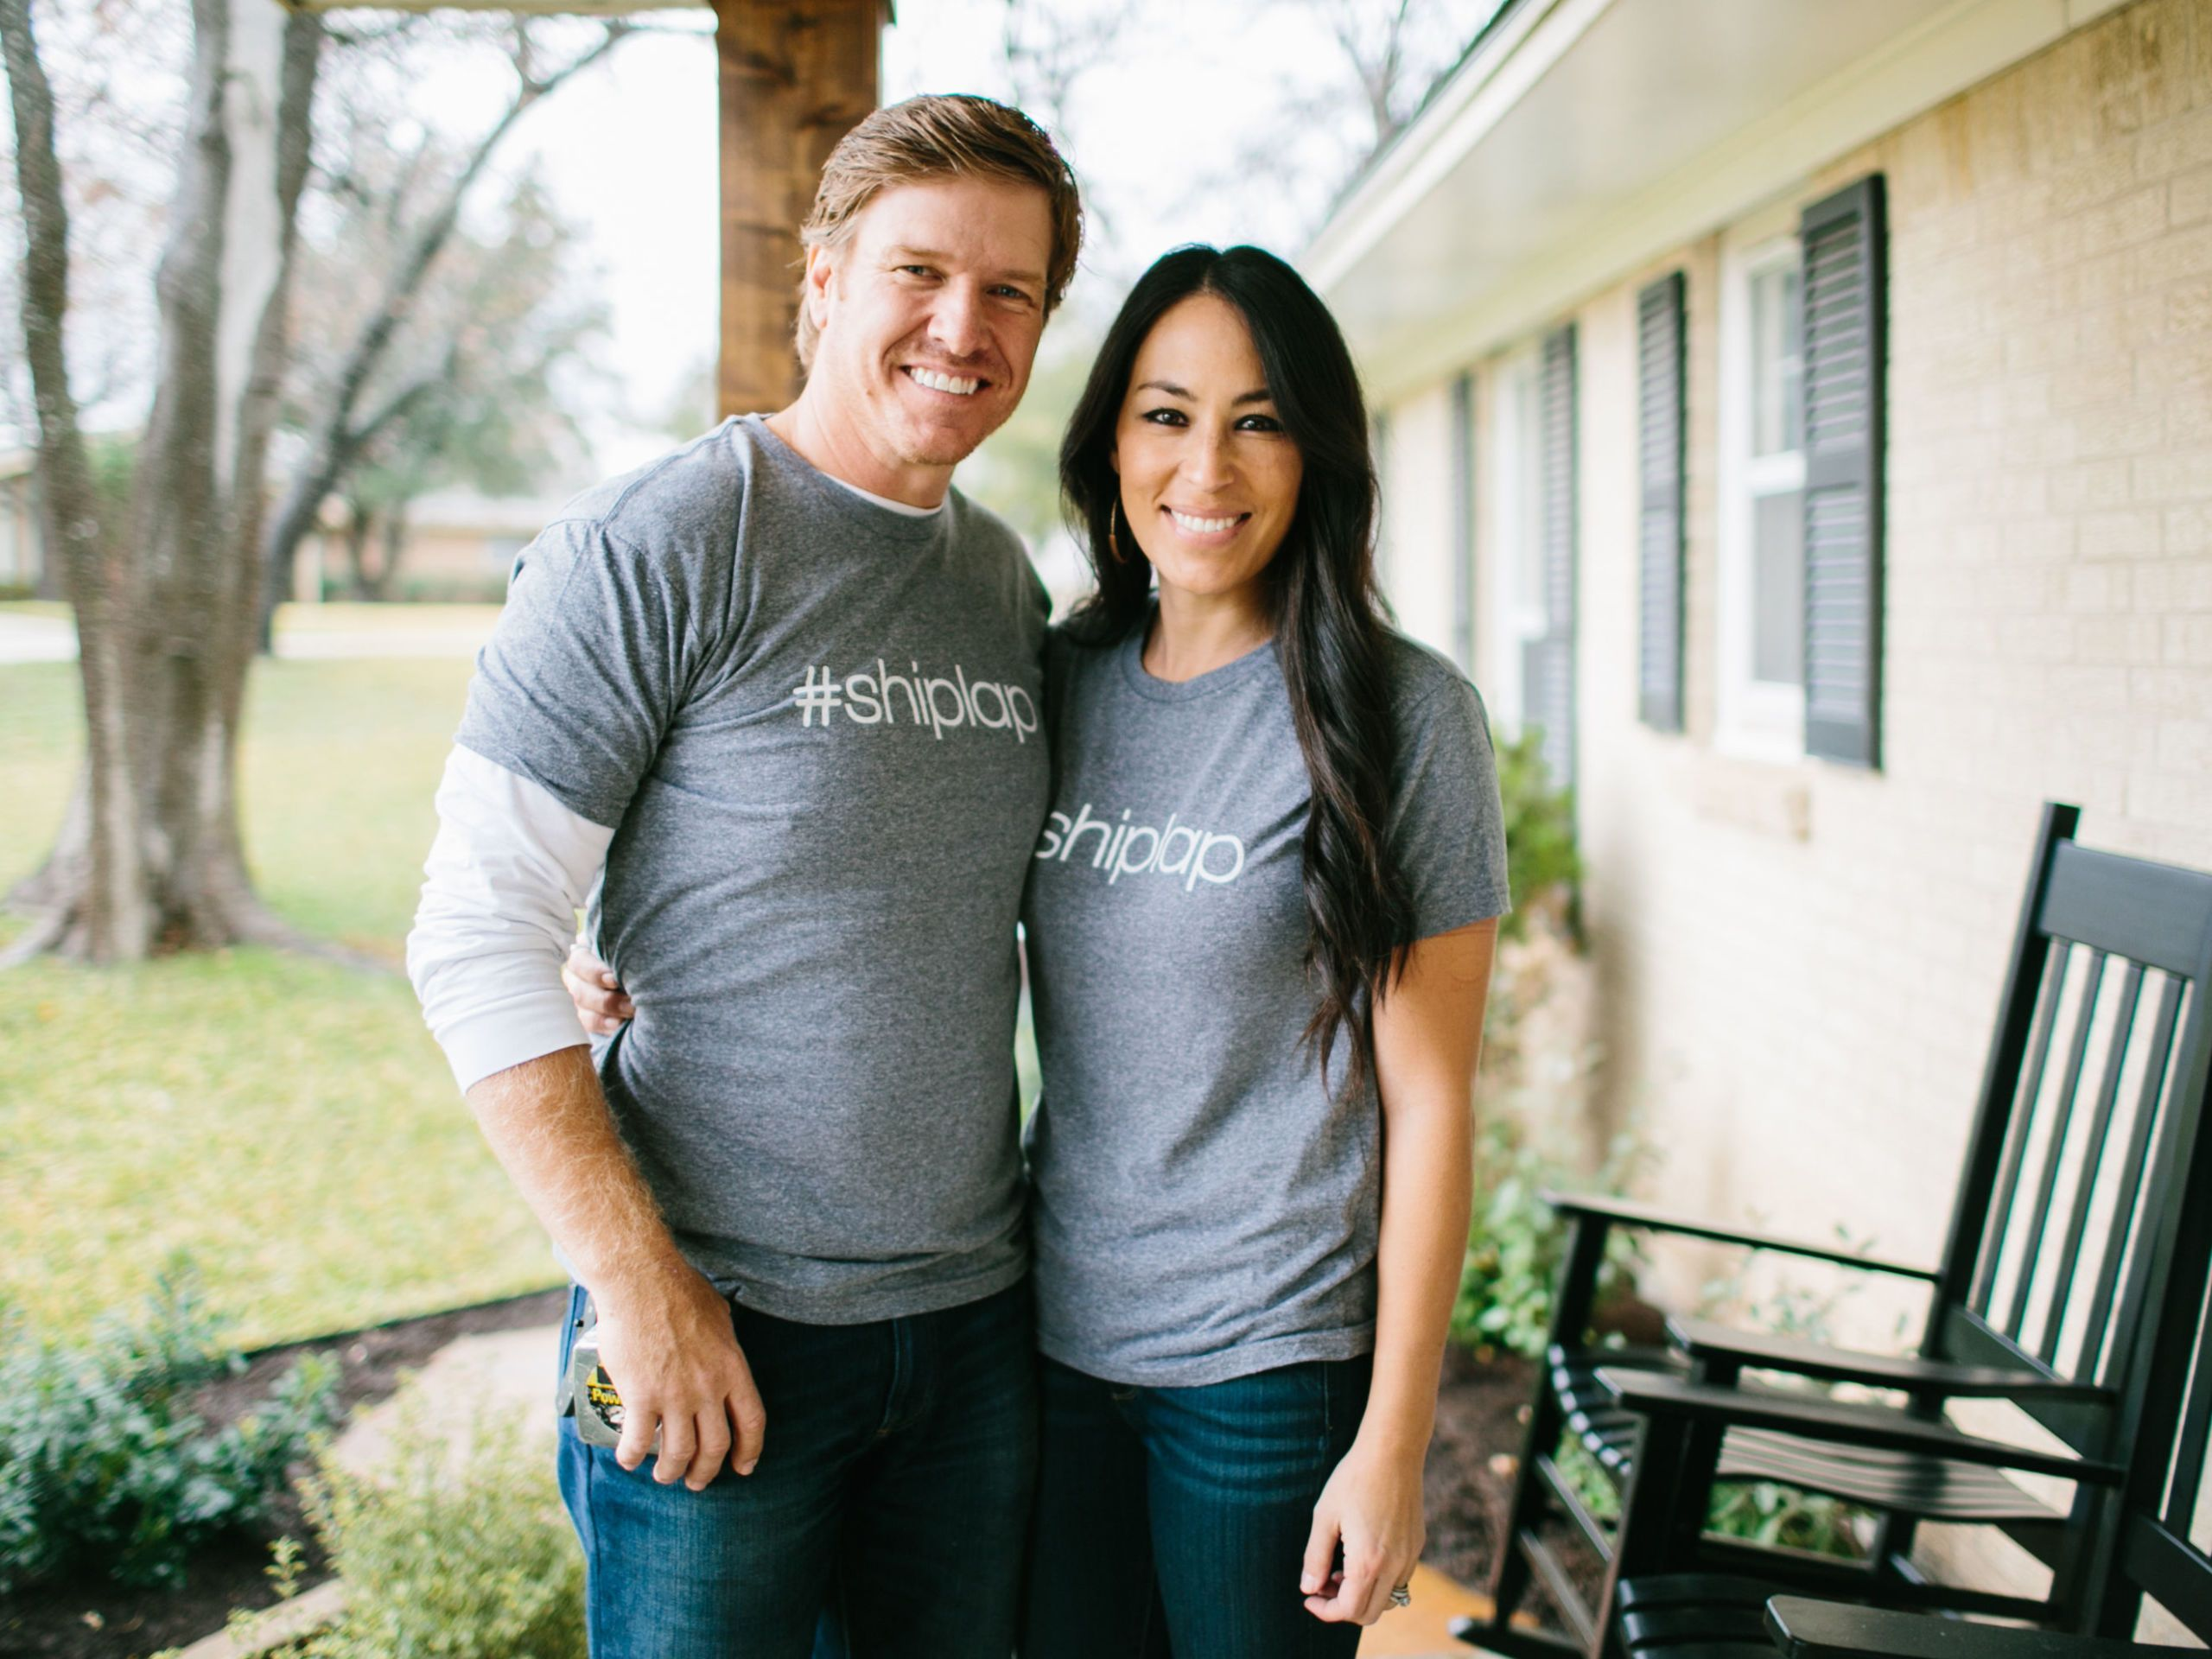 sd aspect 1470100580 original fixer upper gift guide 18 shiplap shirts?resize=768 * joanna gaines shiplap backlash fixer upper style